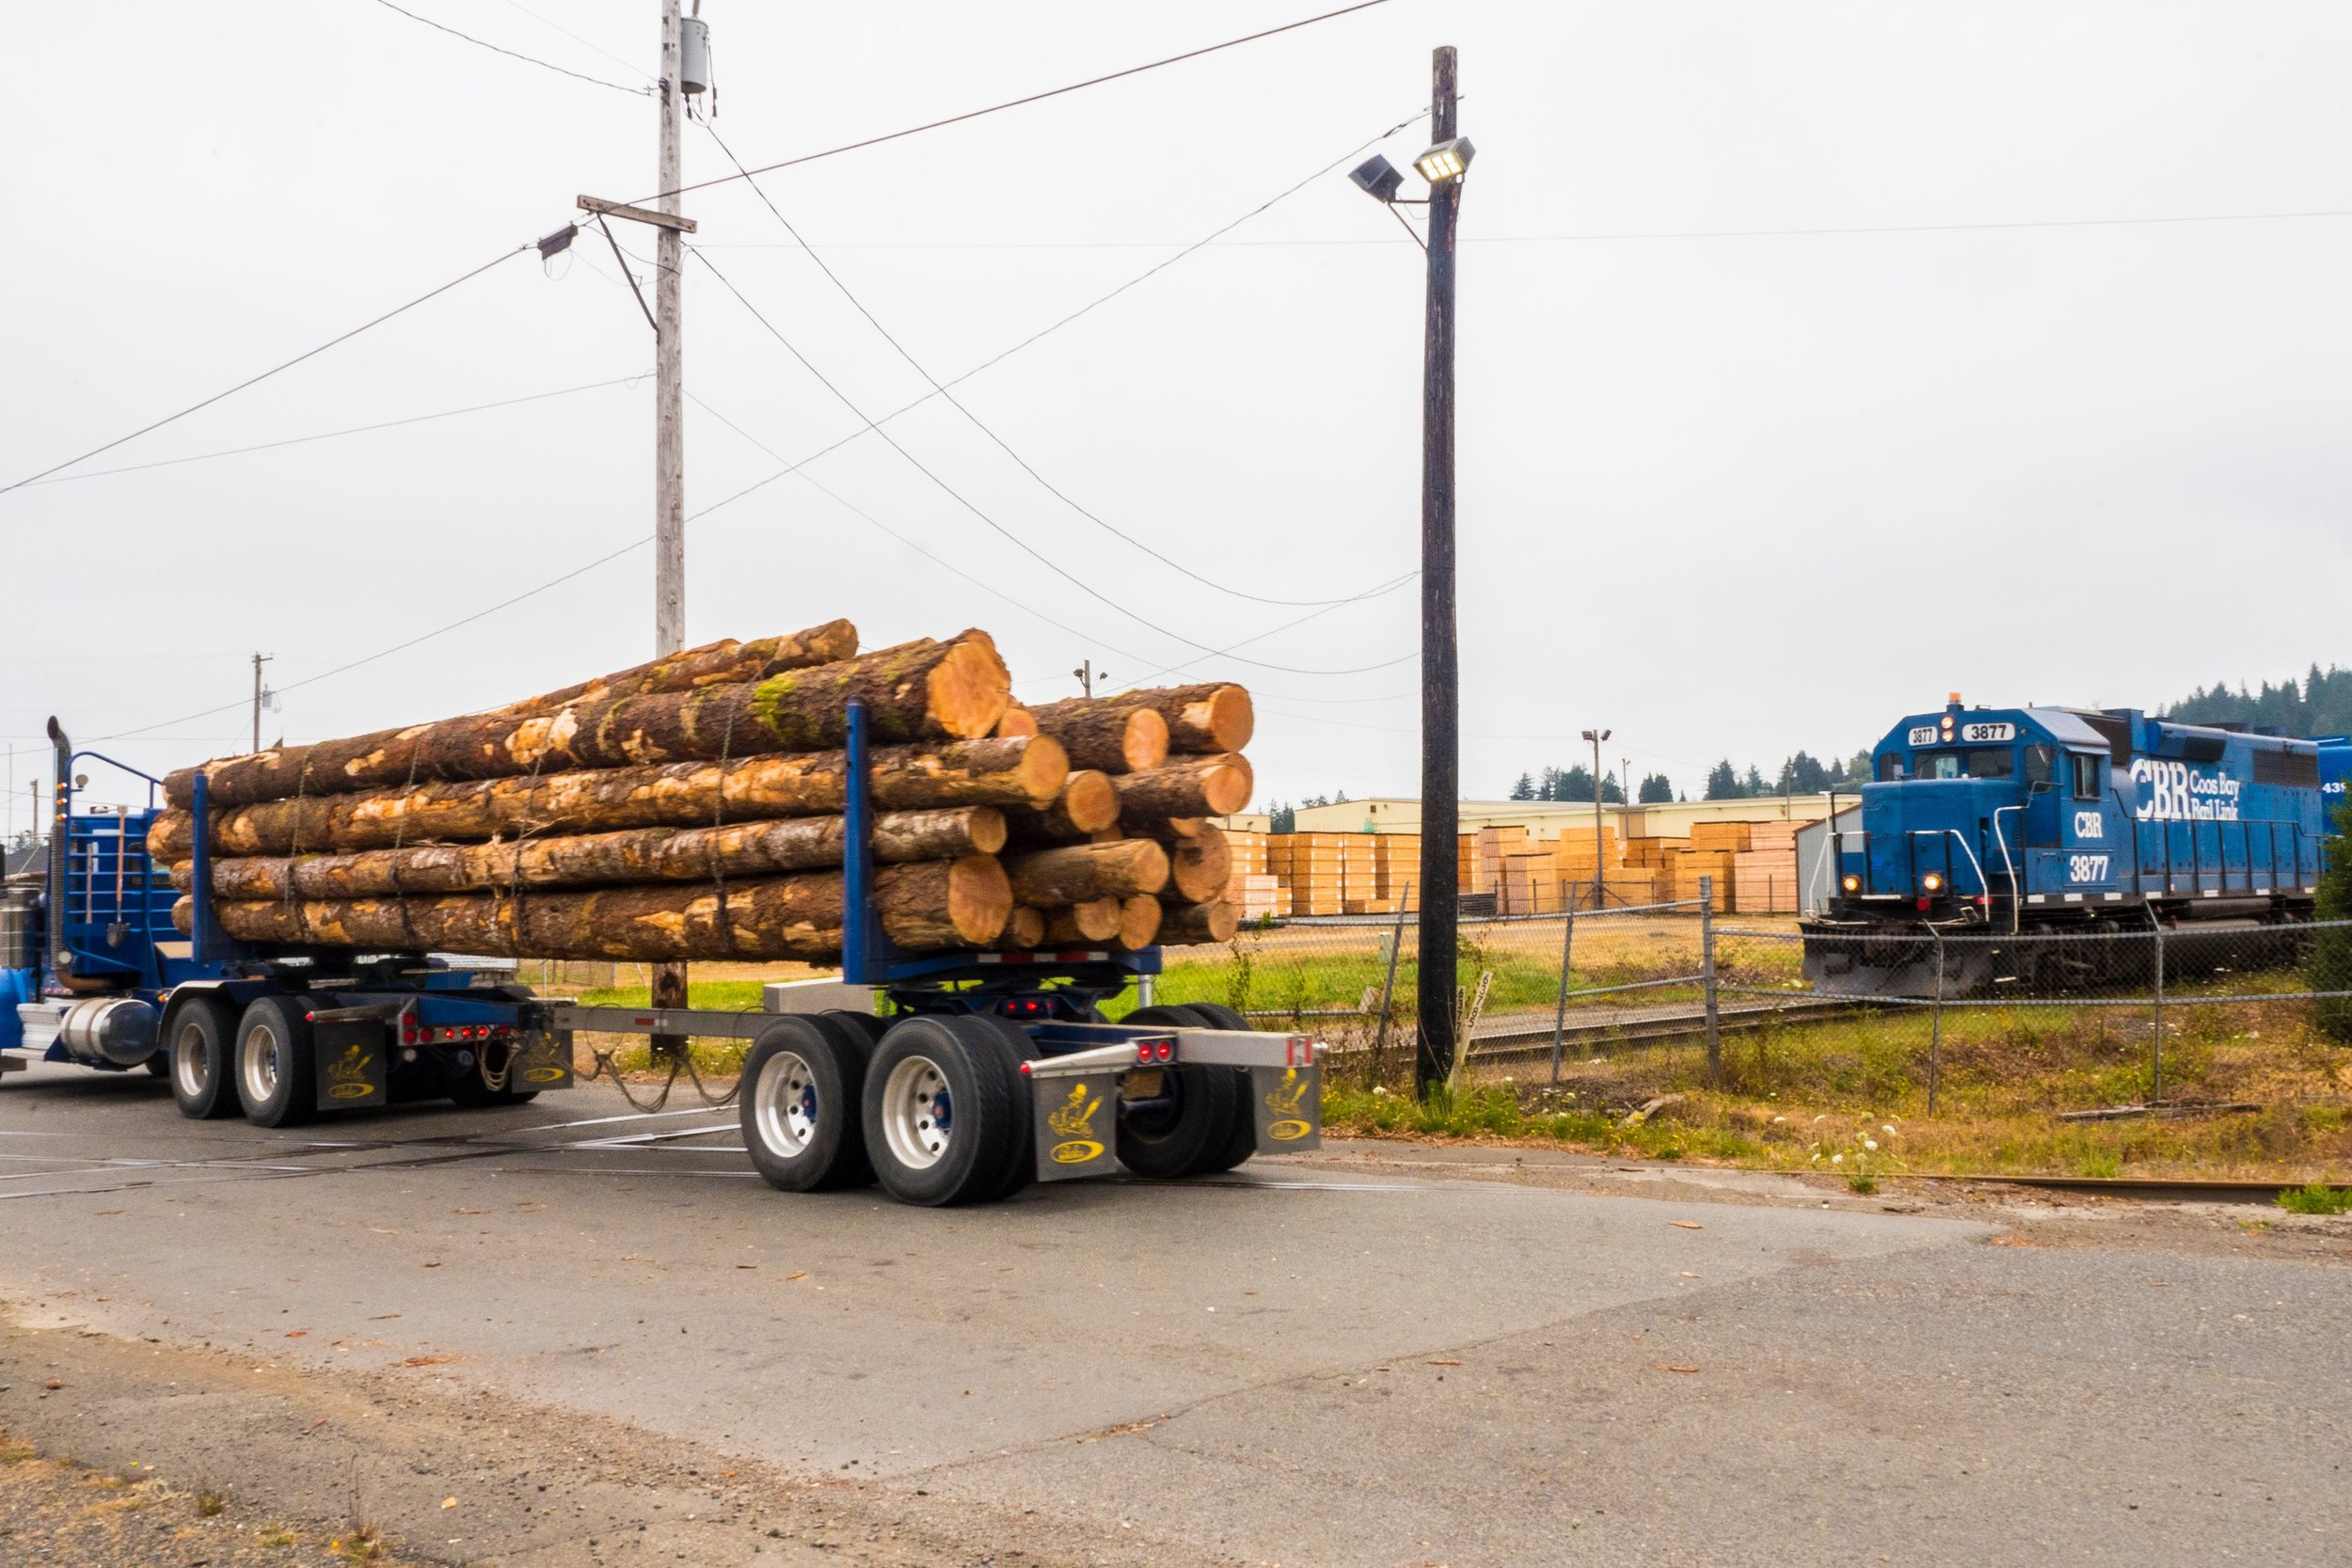 A log truck enters the GP Sawmill while a fully loaded CBR gets ready to head out